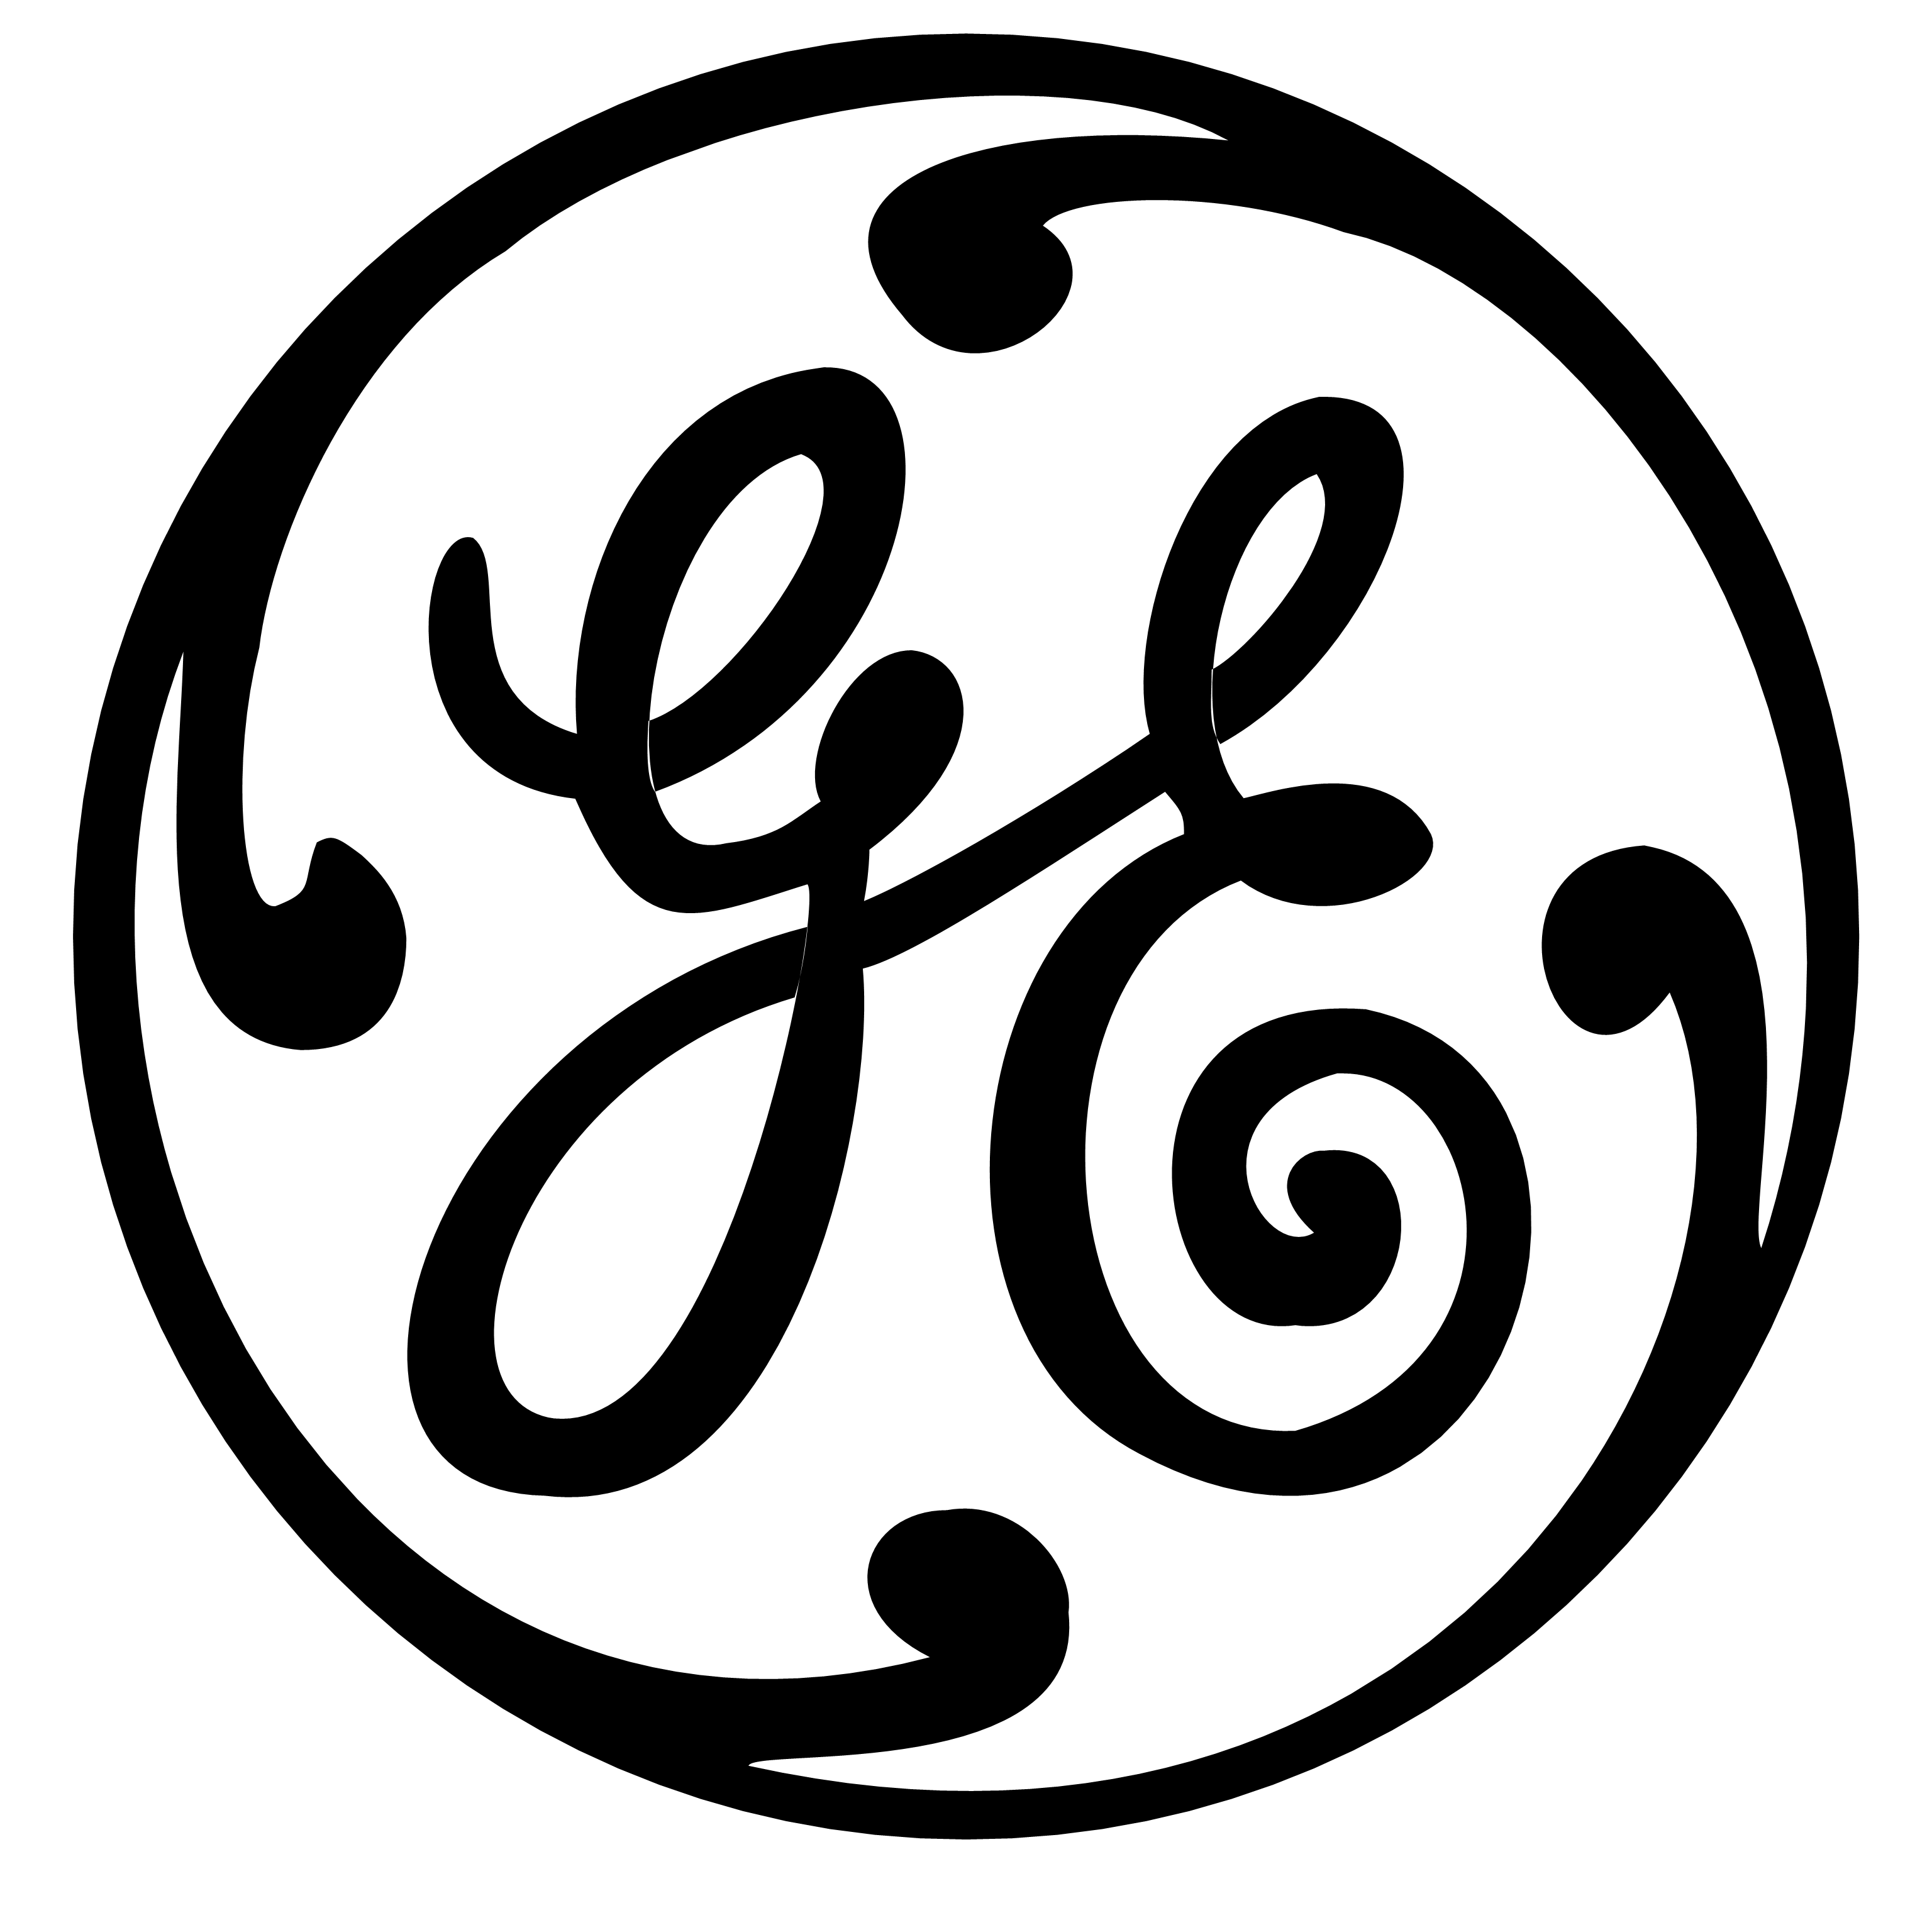 general electric General electric co plans to move its corporate headquarters to boston from connecticut this summer, ending a fierce competition among several states to lure one of the nation's largest companies.